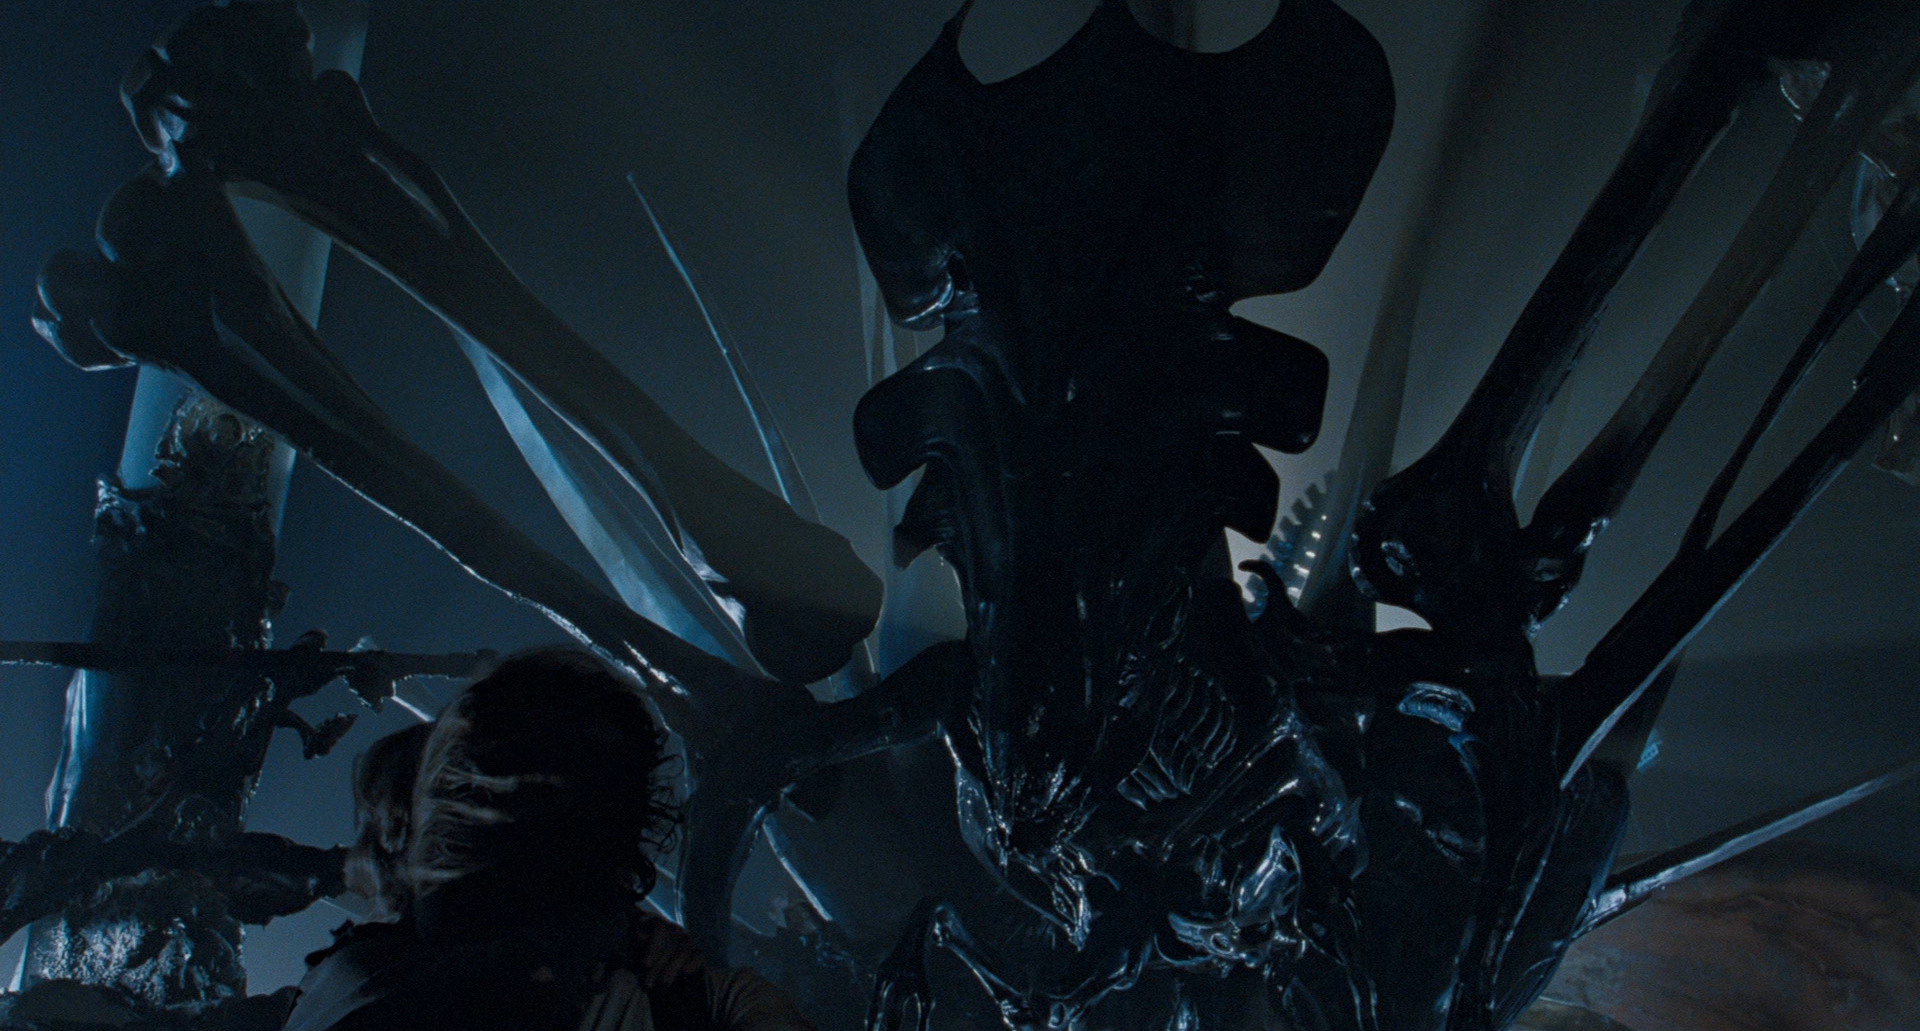 Alien': Every Stage in the Xenomorph's Gruesome Life Cycle